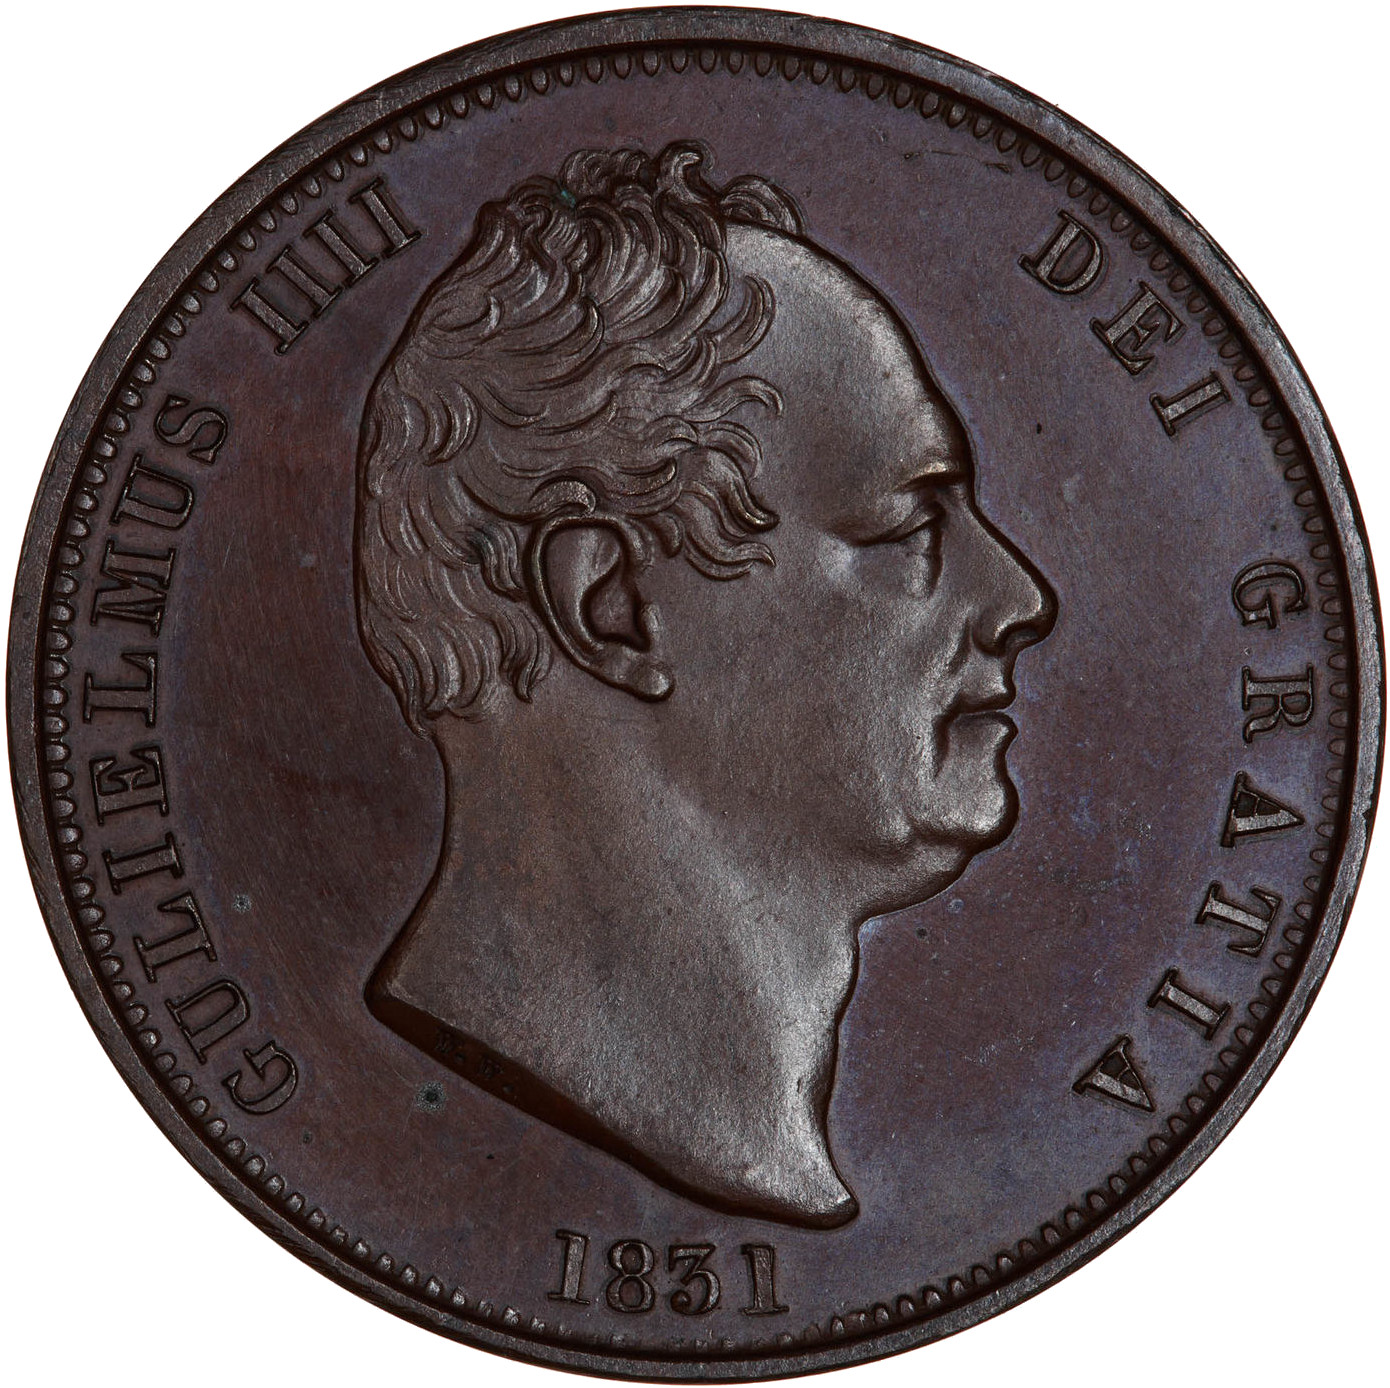 Halfpenny (Britannia, second design): Photo Coin - Halfpenny, William IV, Great Britain, 1831